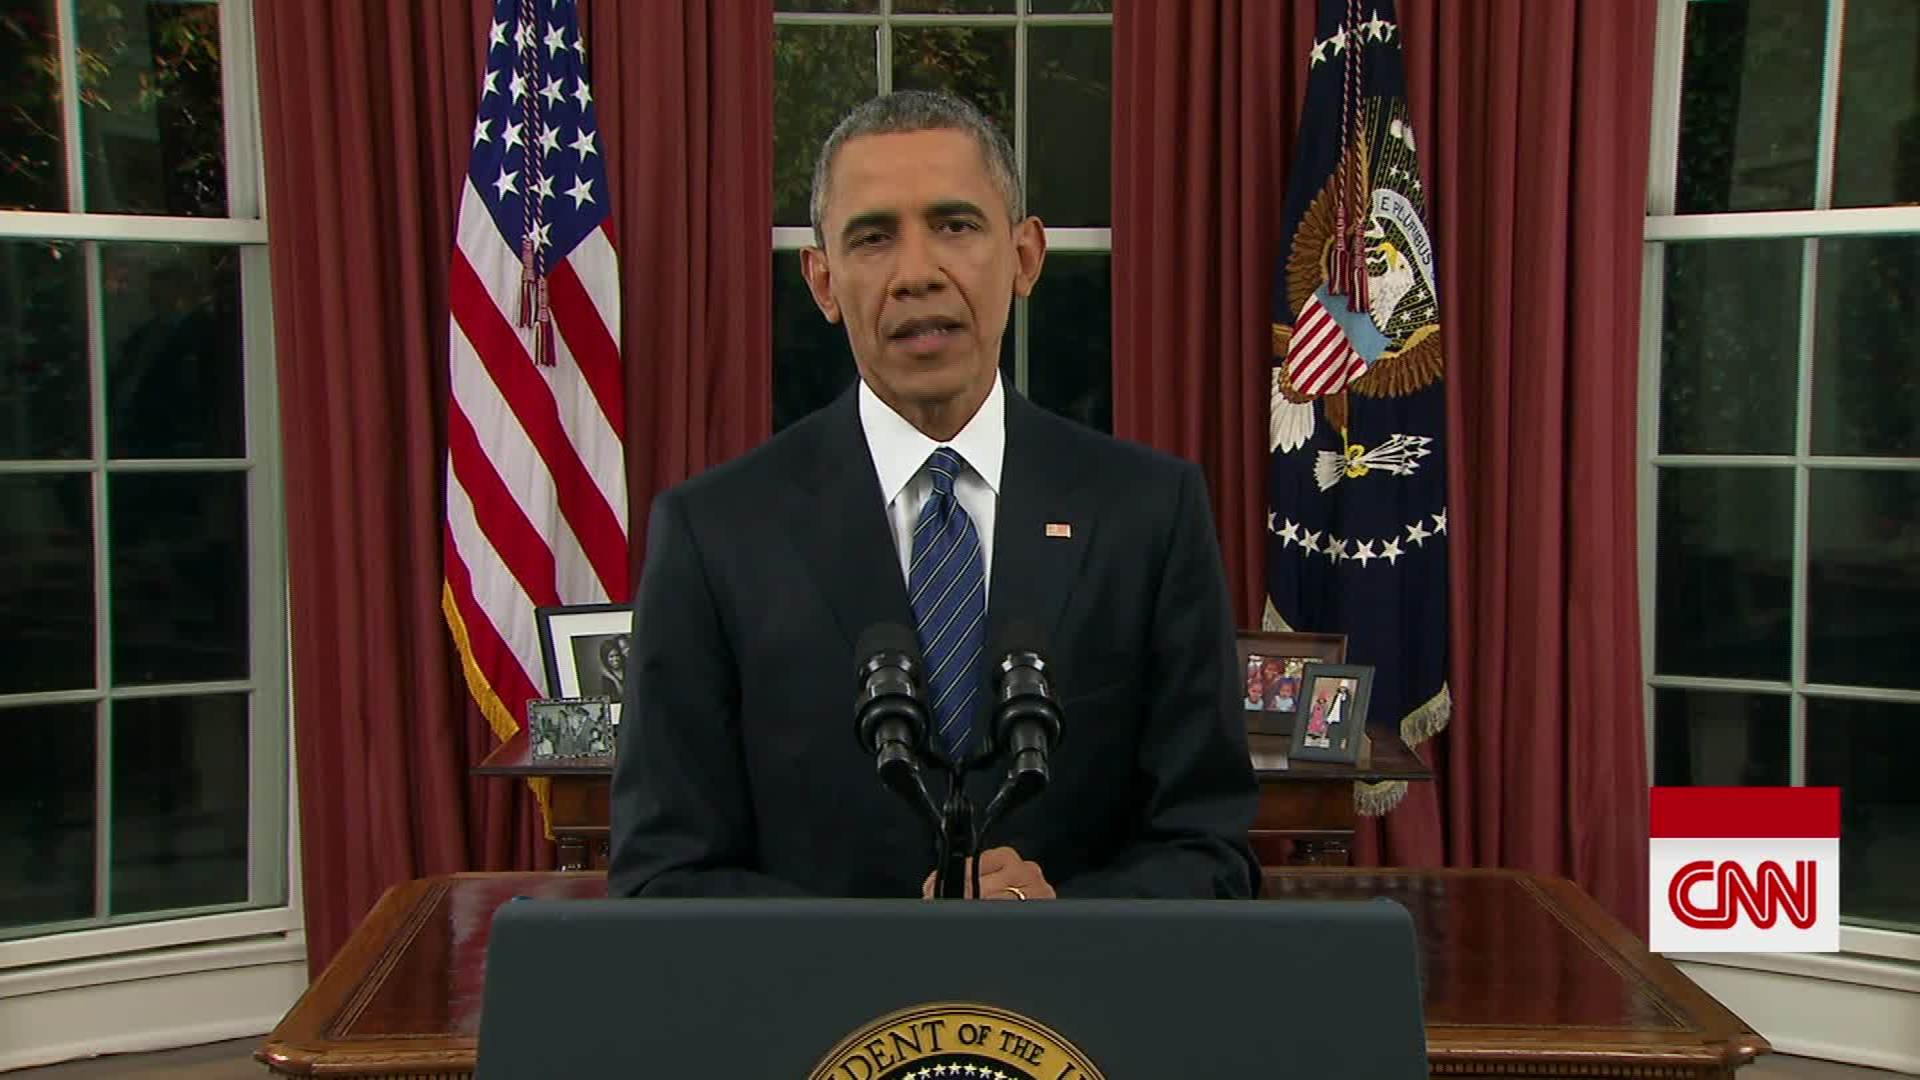 Obama Oval Office Address Not So Much >> President Obama S Full Oval Office Address Cnn Video